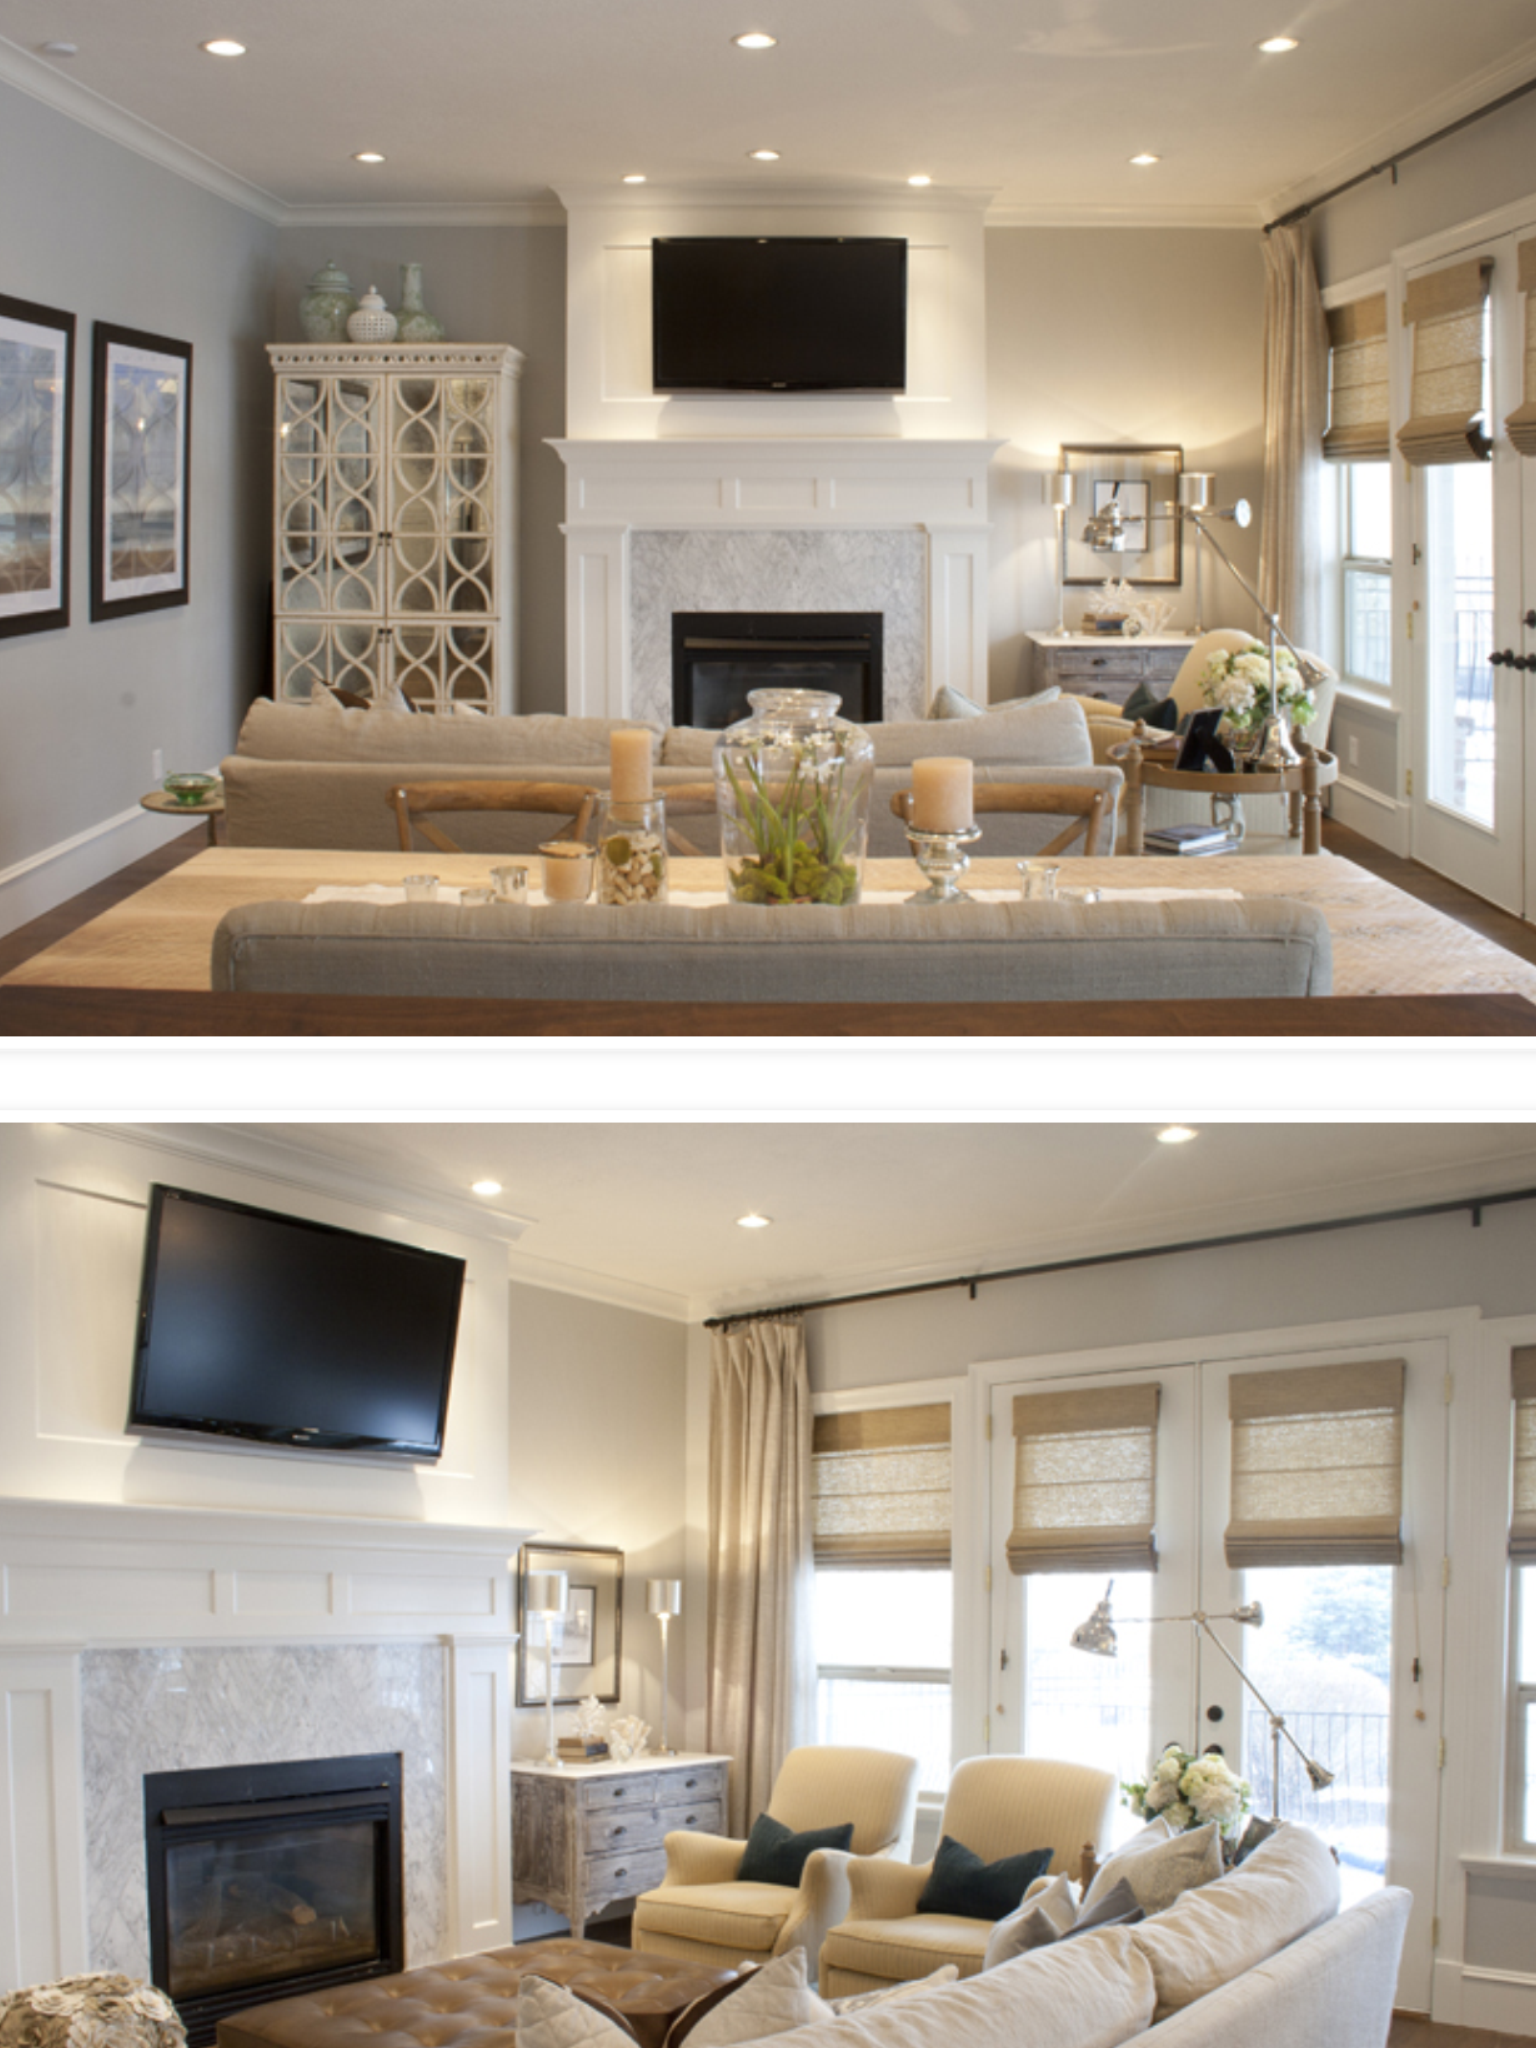 Recessed Lighting In 2019 Small Living Room Layout